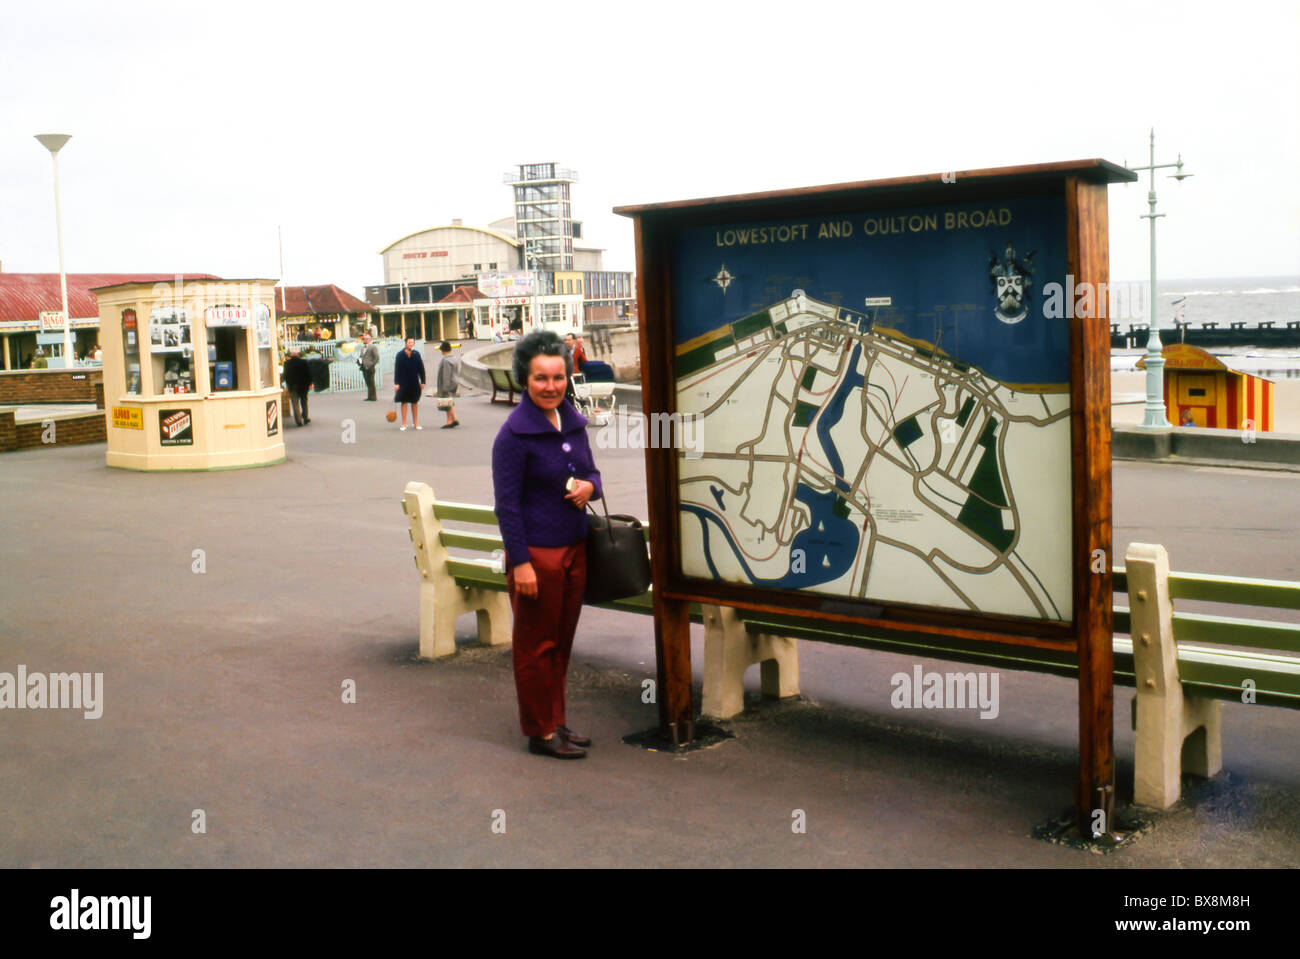 A original 1963 image of woman standing in front of the Lowestoft and Oulton tourist map board on the sea front - Stock Image